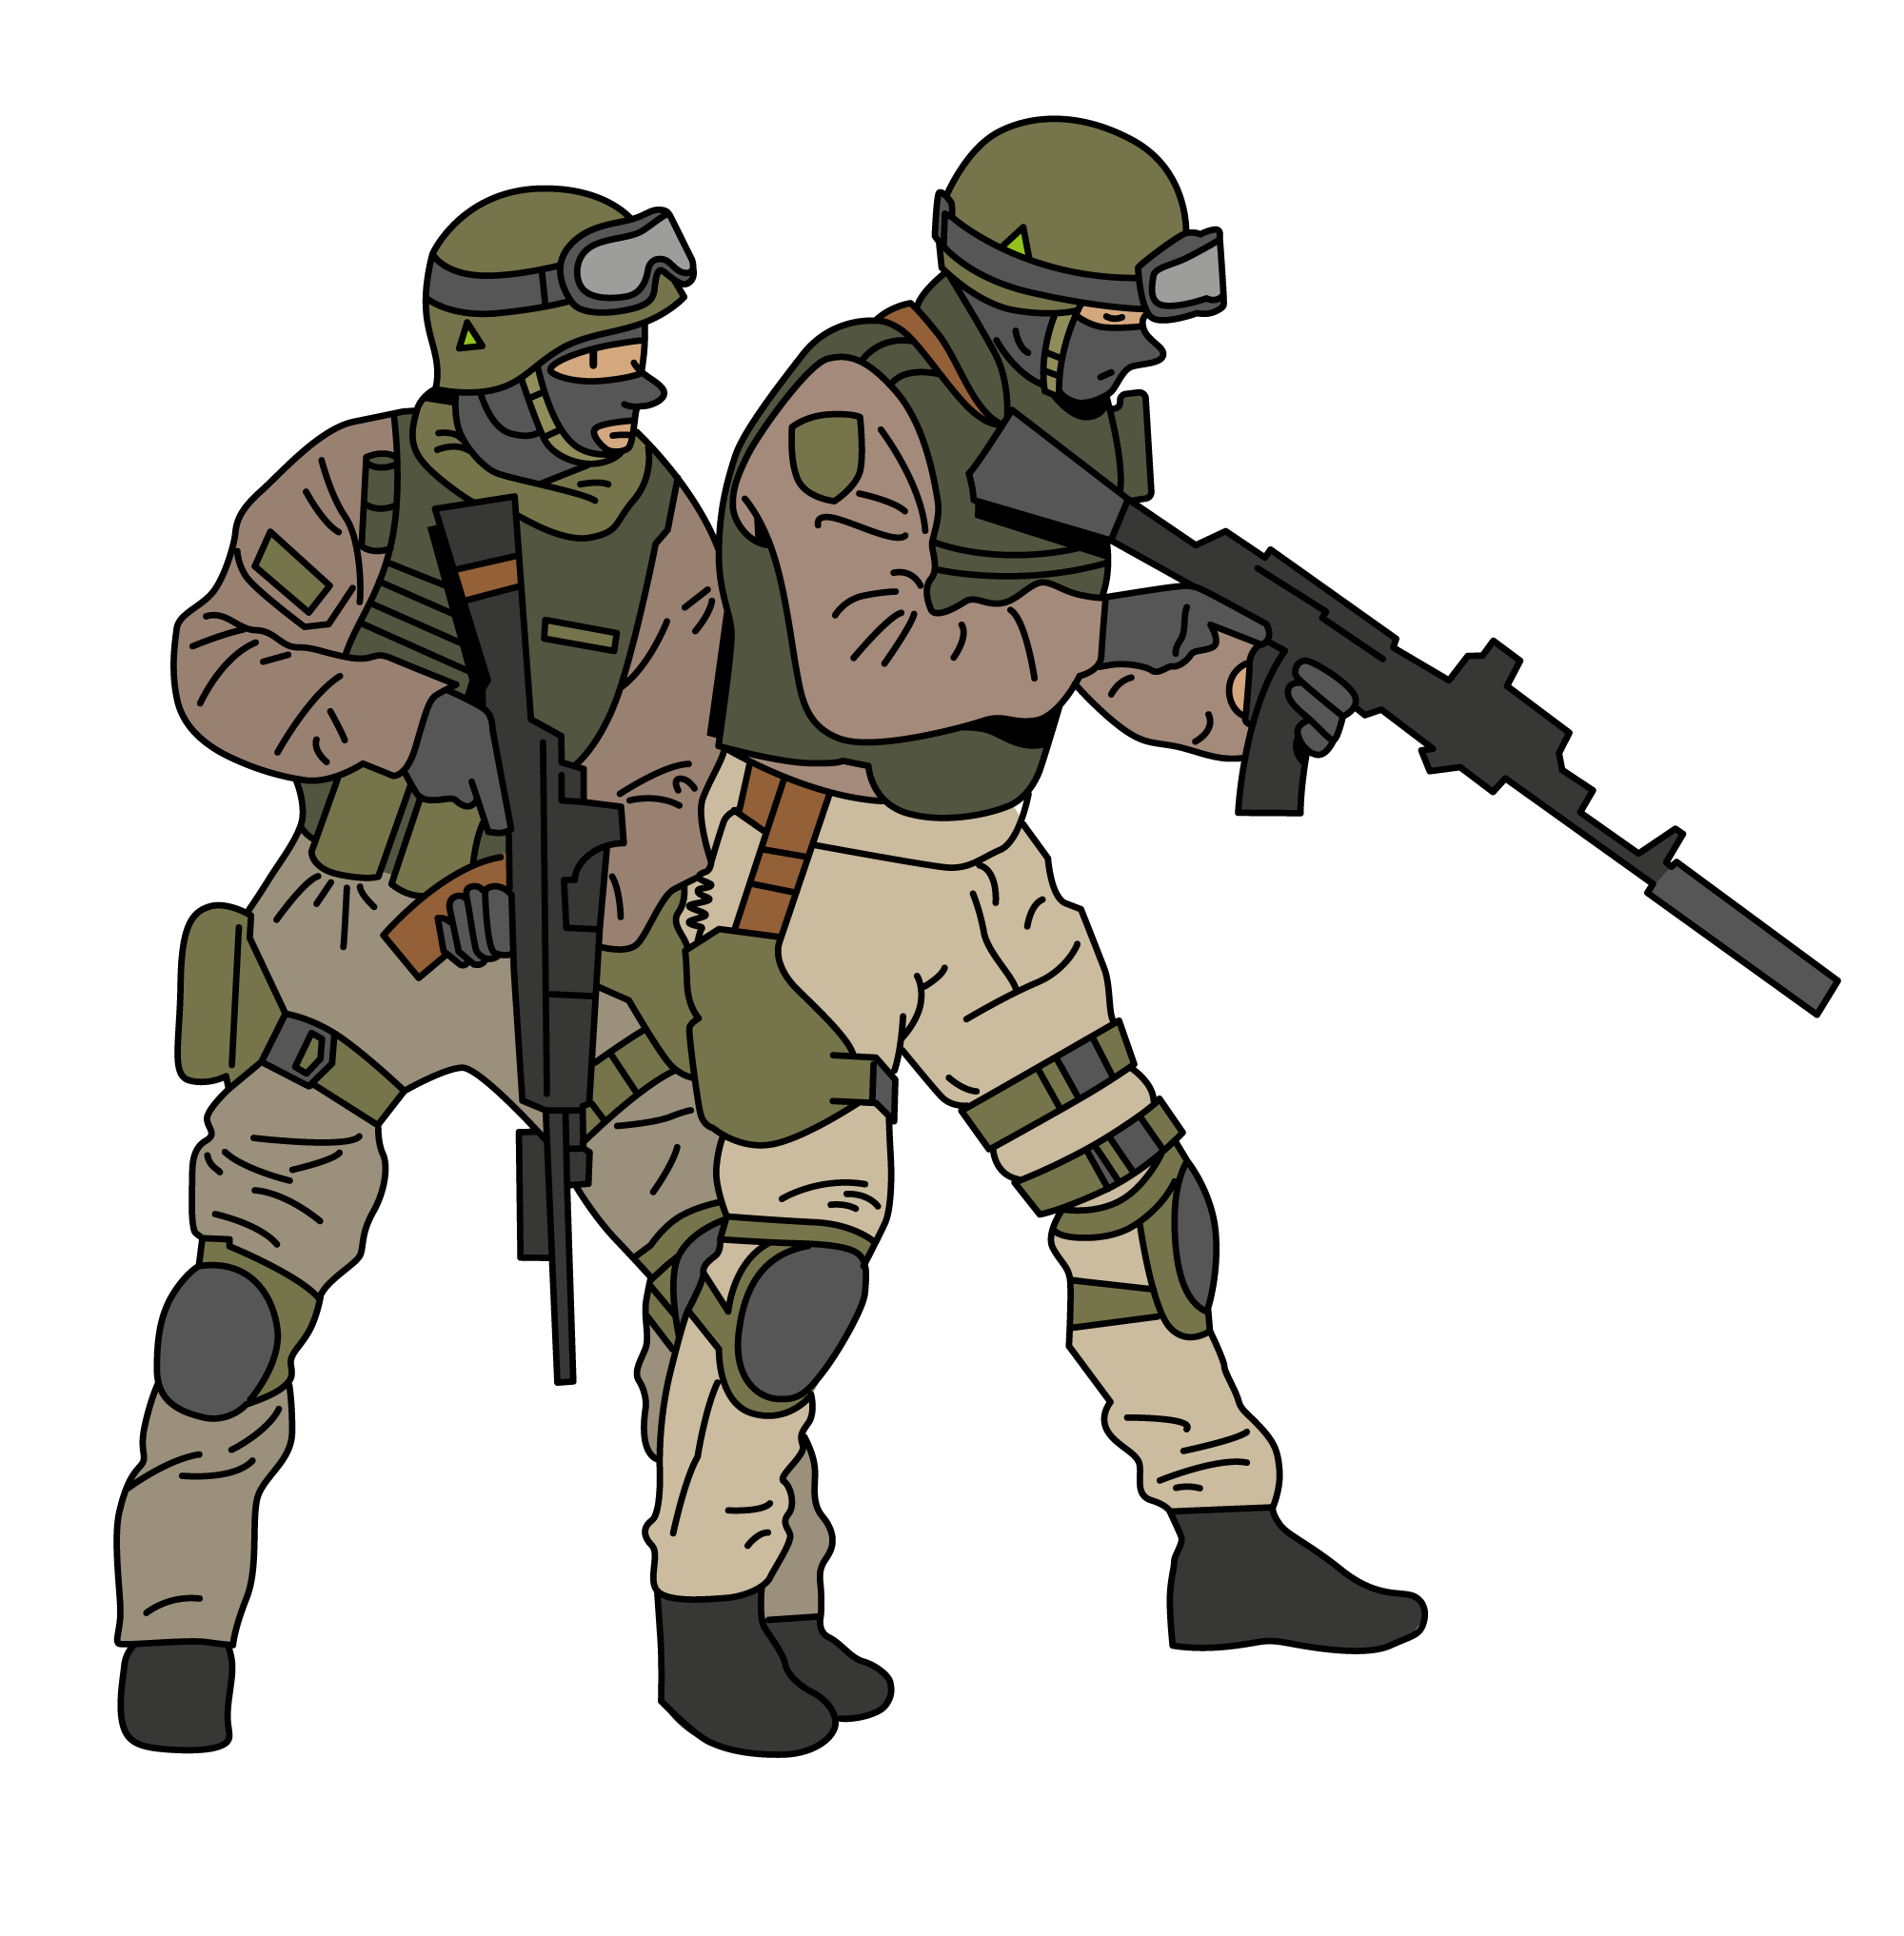 Soldiers vector illustration. Proffesional in combat stance